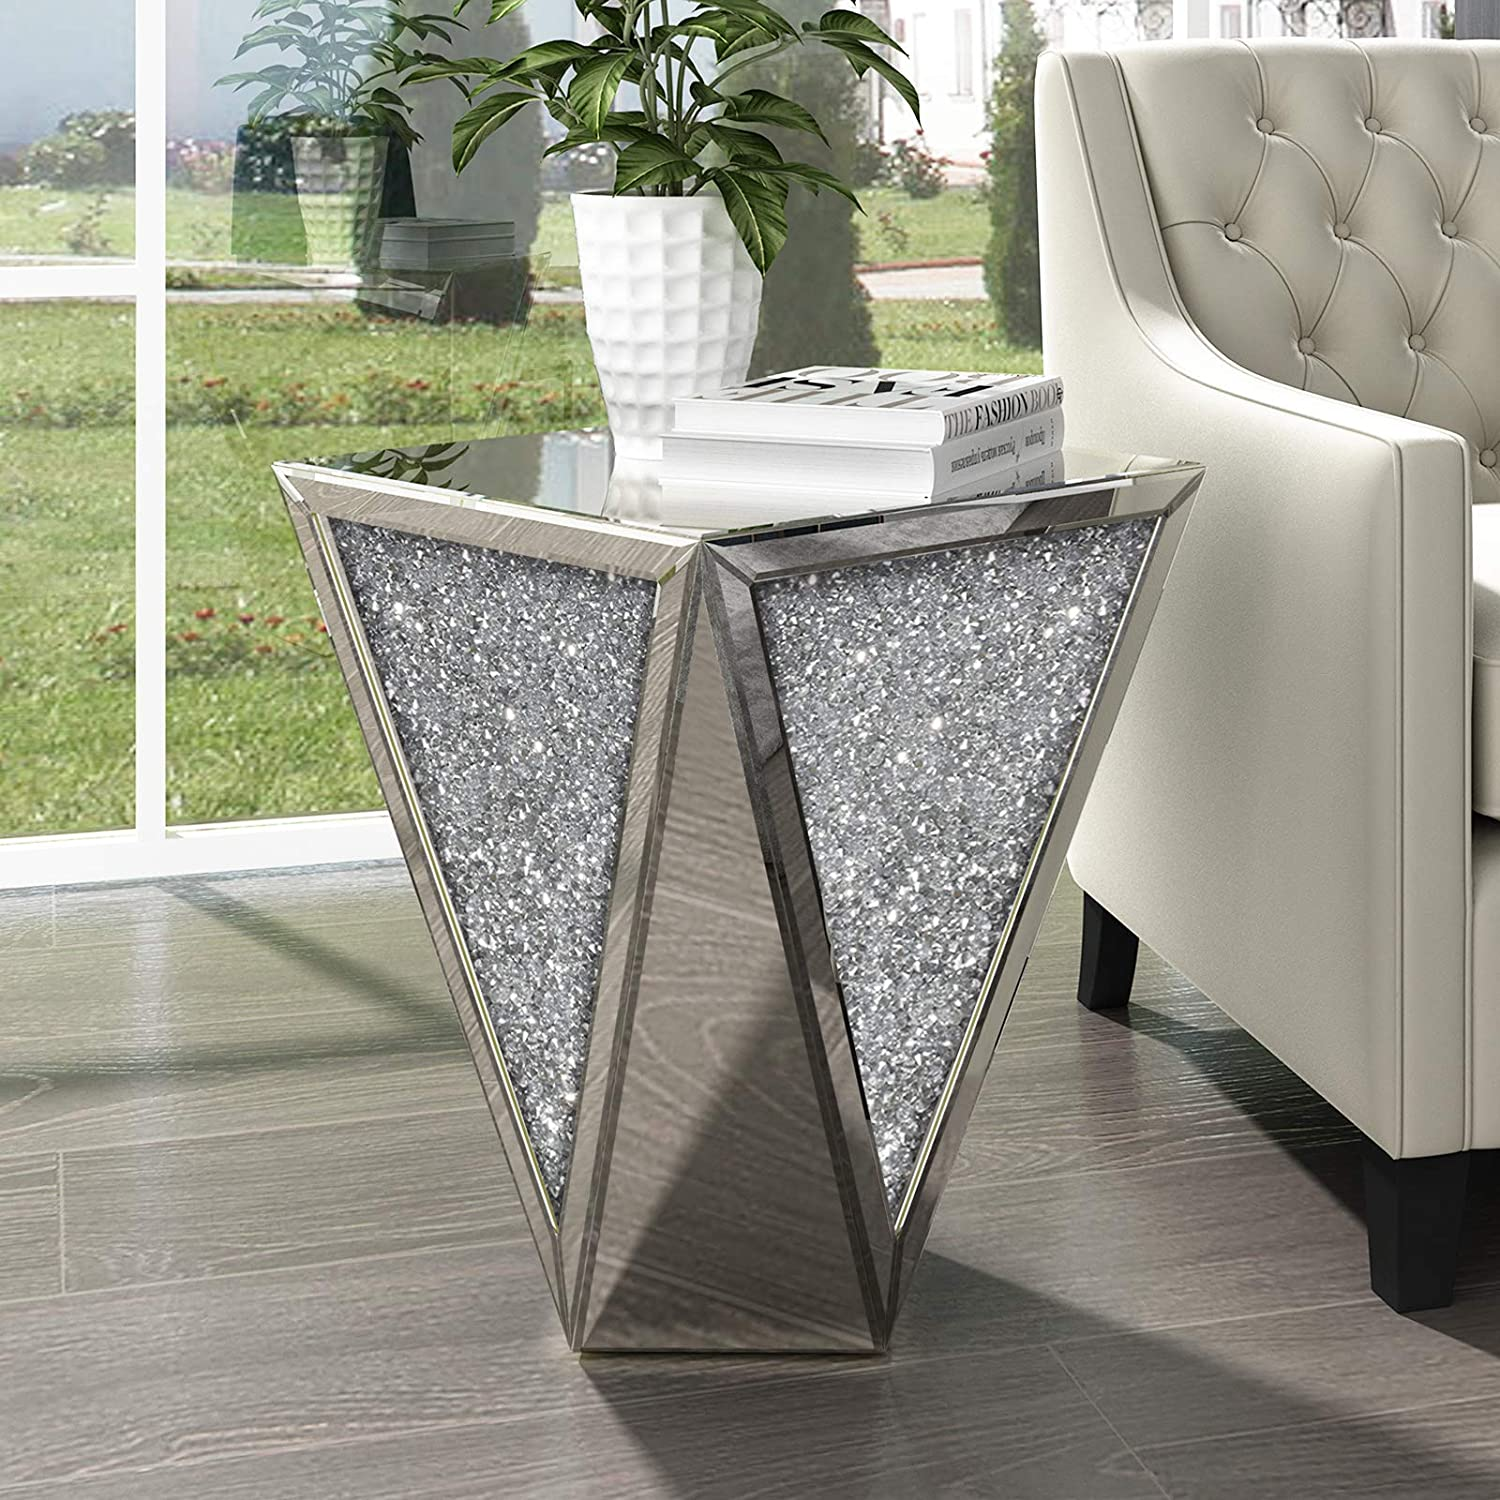 Amazon Com Mirrored End Table Living Room Diamond Setting Side Table Pedestal Stand For Bed Sofa Corner Hallway Kitchen Dining